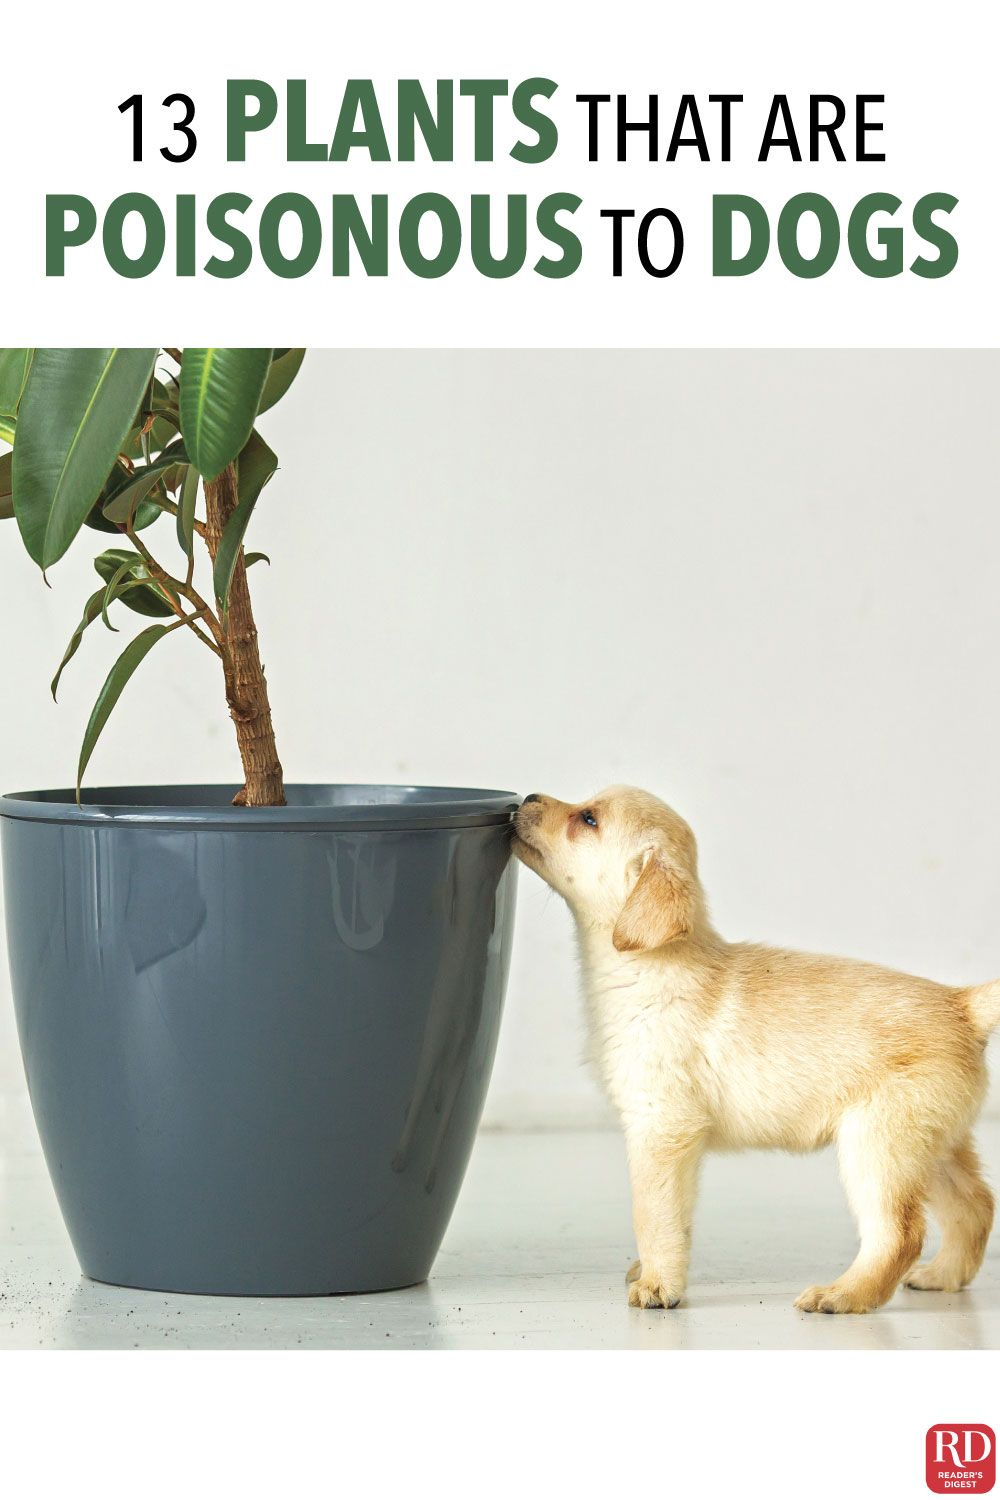 13 Plants That Are Poisonous To Dogs Your Dog Doesn T Know To Stay Away From Them Which Is Why They Shouldn T Be An In 2020 Dogs Plants Poisonous To Dogs